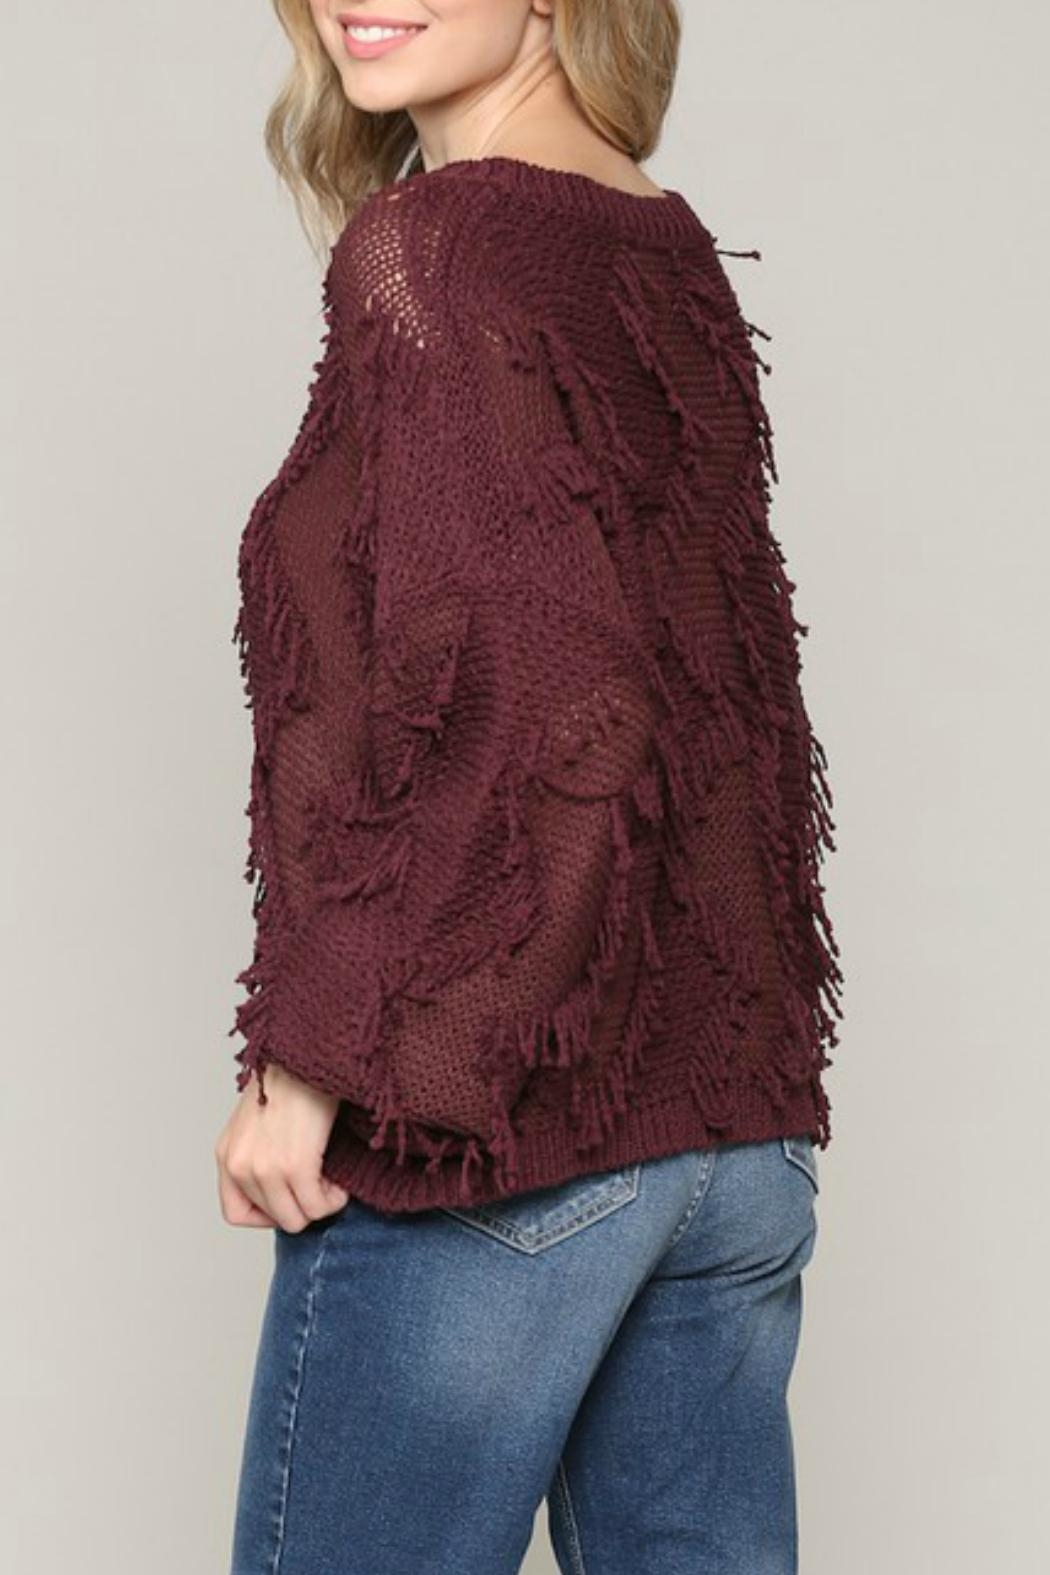 ALB Anchorage Fringe Pullover Sweater - Side Cropped Image